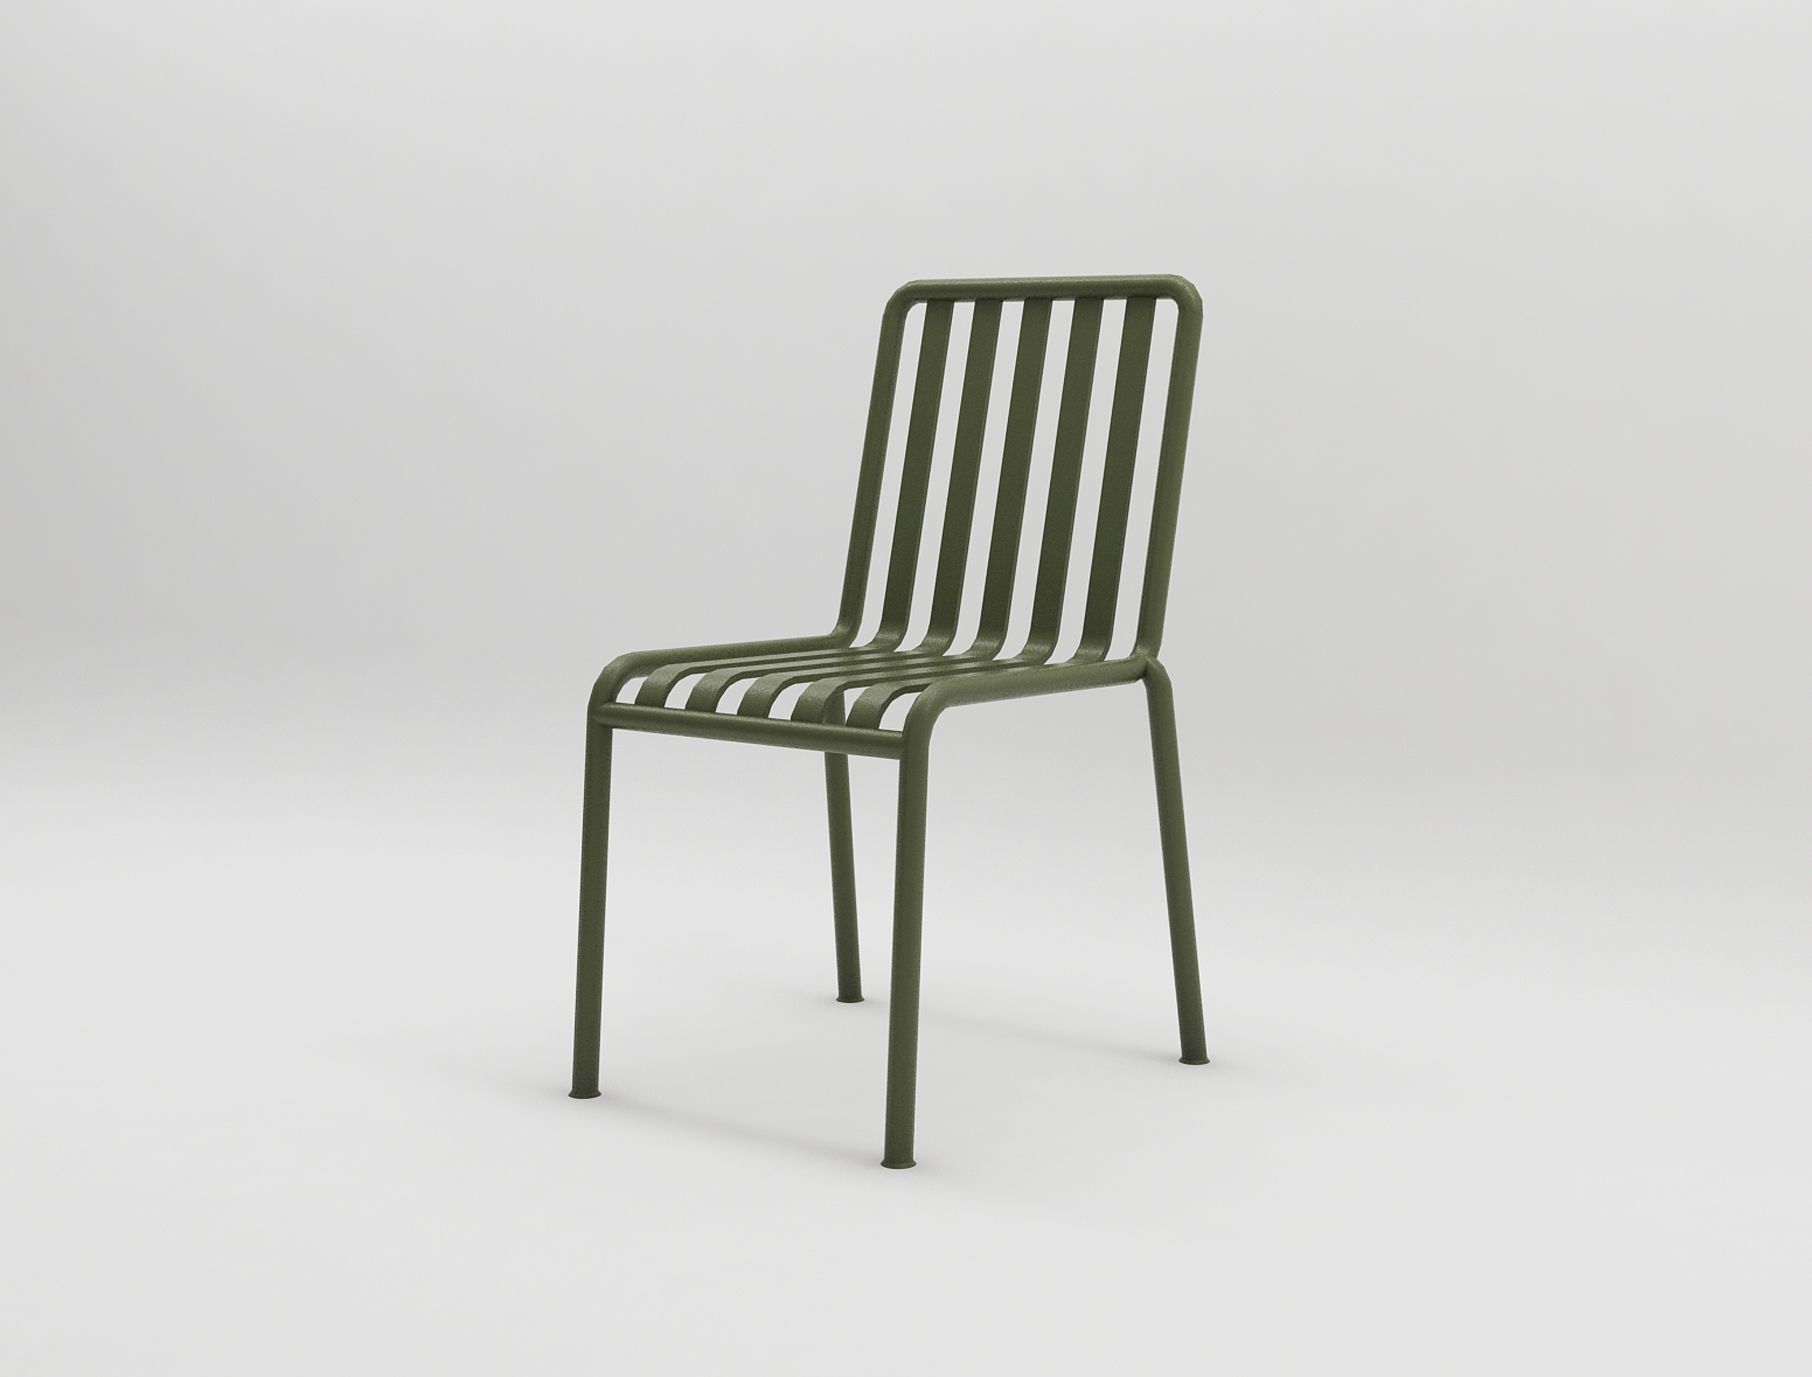 Terrific Olive Palissade Chair Hay Design Illopop 3D Model Alphanode Cool Chair Designs And Ideas Alphanodeonline